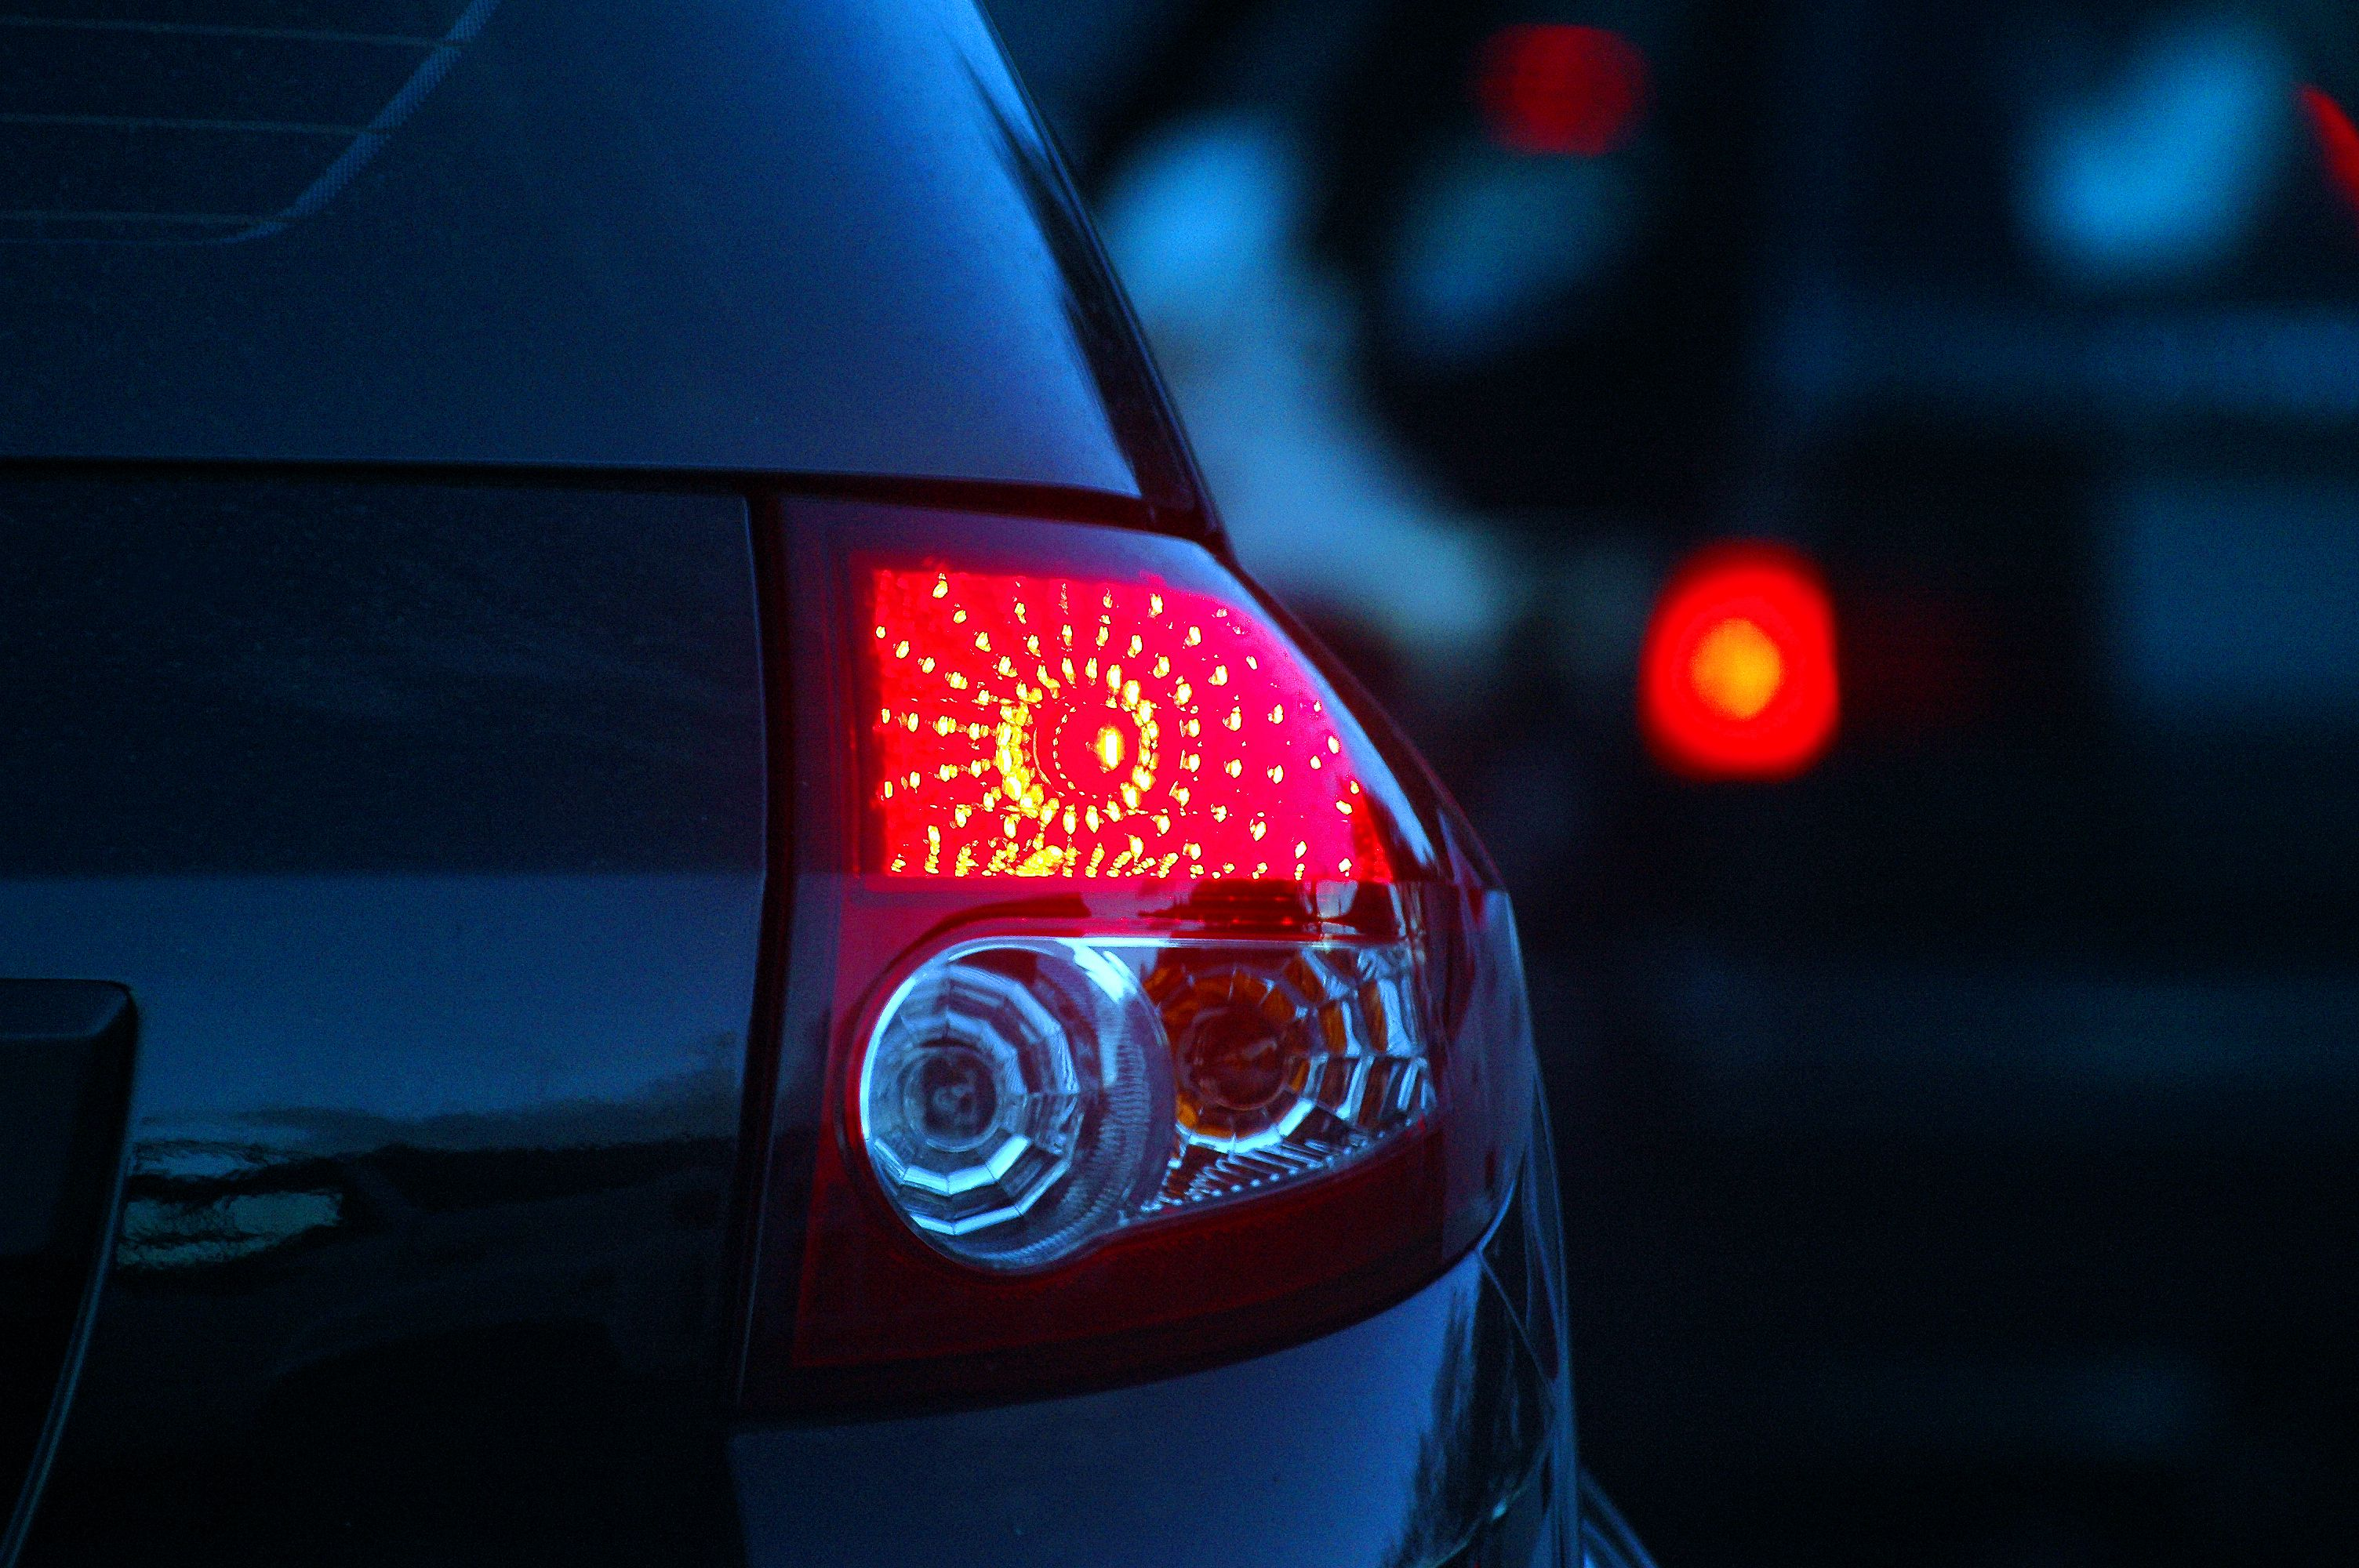 GettyImages-101575484-57ed20985f9b586c35a72c20 Cool toyota Camry 2008 Dashboard Warning Lights Cars Trend